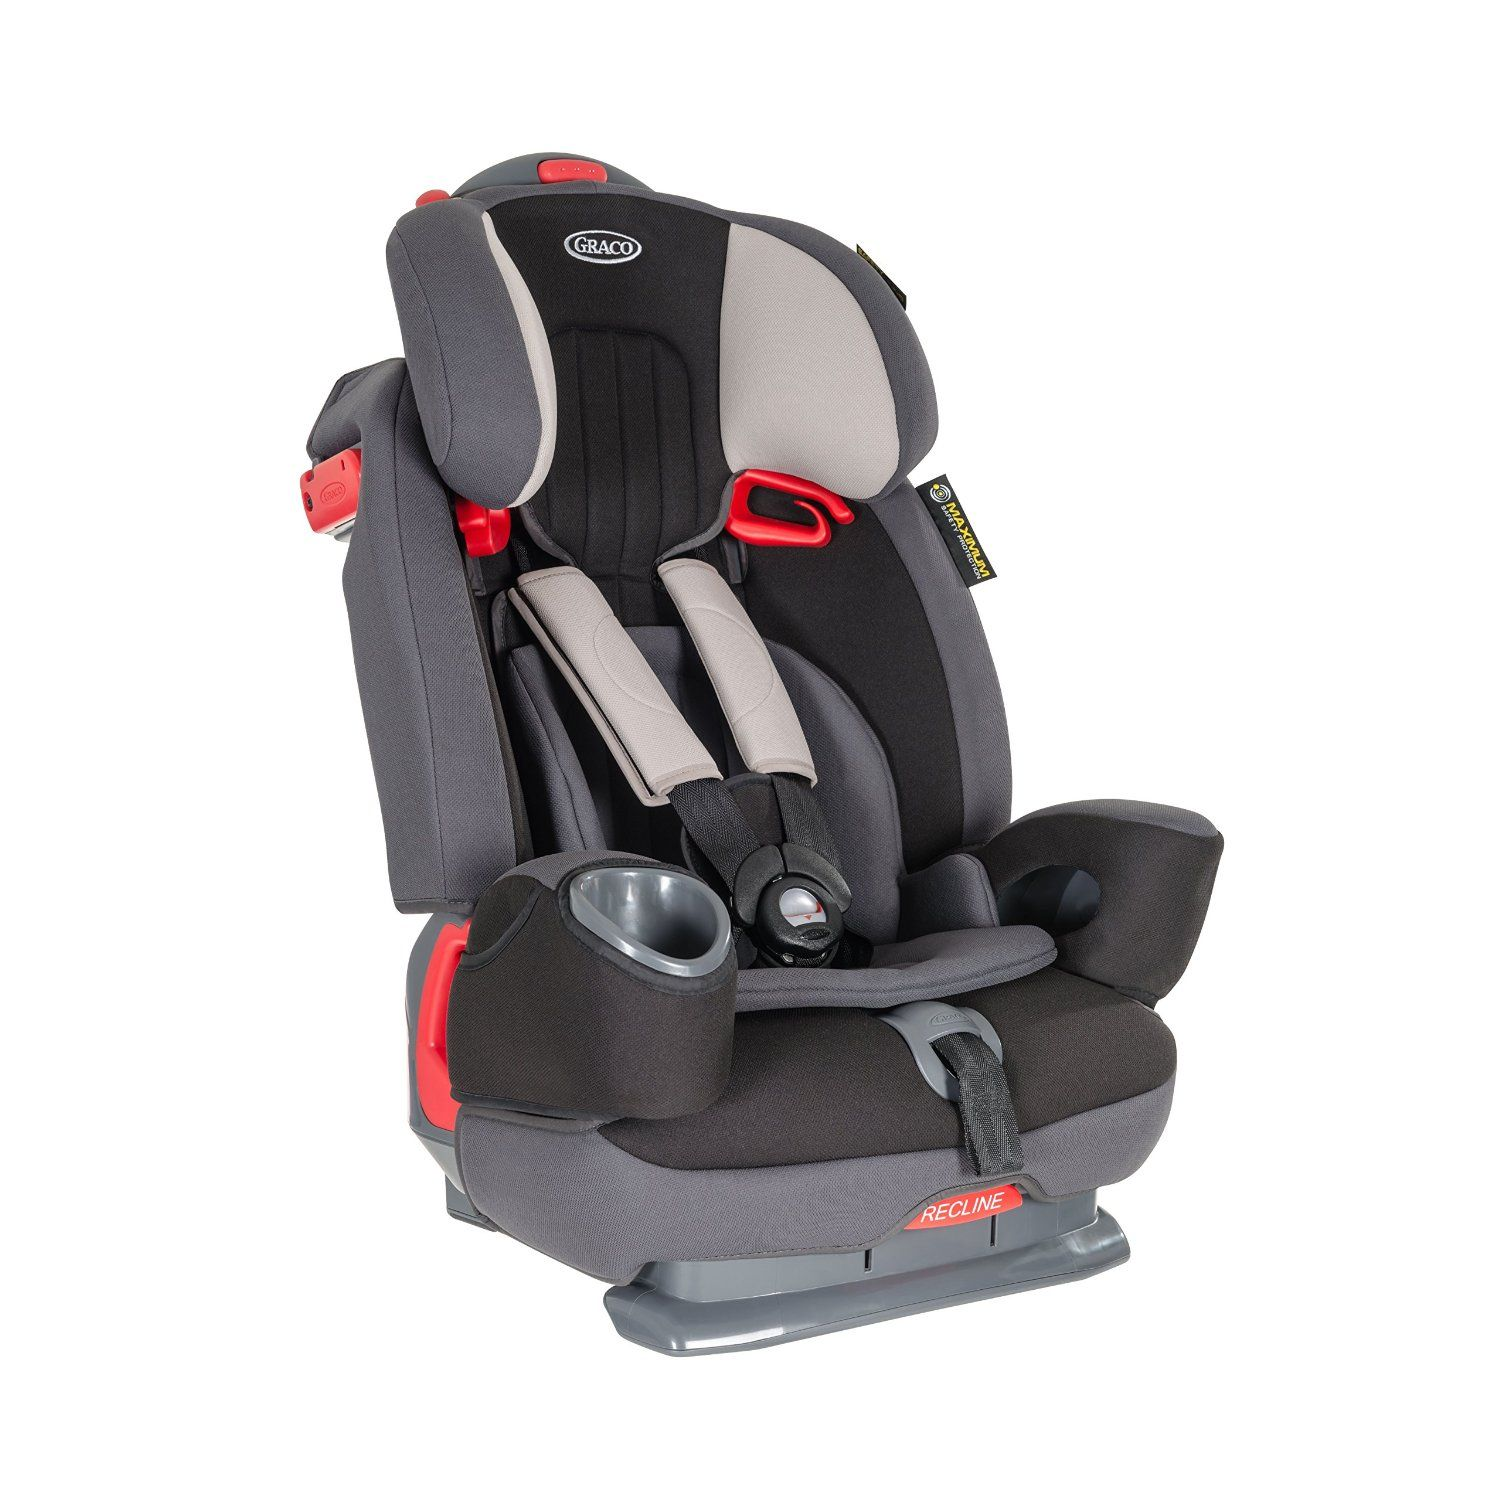 Graco Nautilus Elite Group 1/2/3 Car Seat - Aluminium: Amazon.co.uk